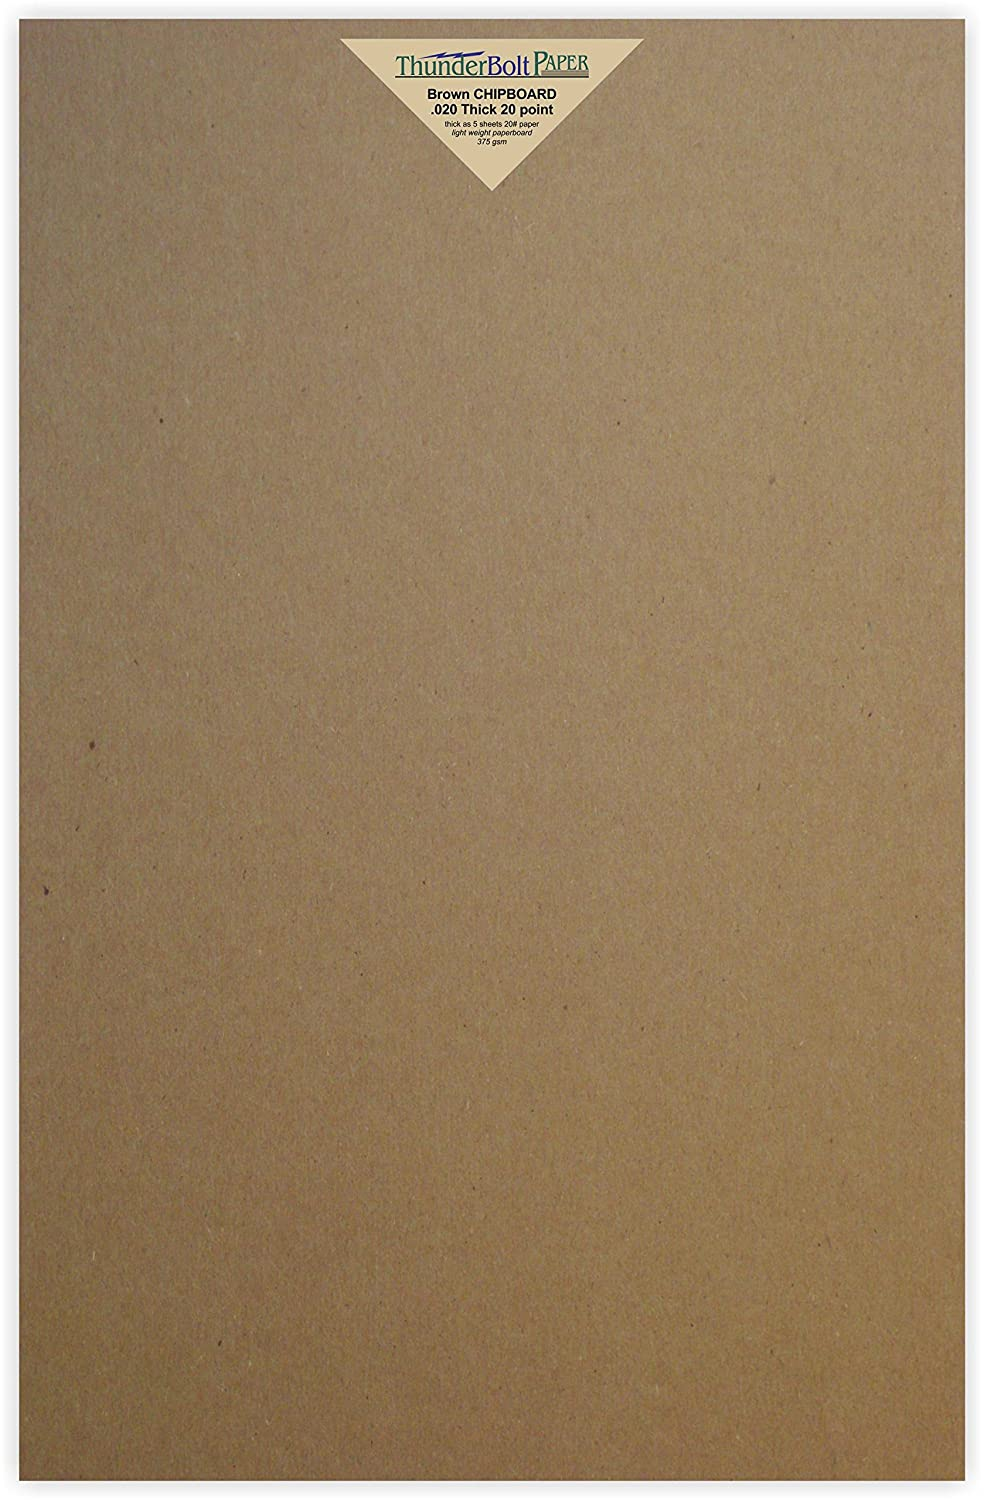 20 Sheets Chipboard 20pt (point) 12 X 18 Inches Light Weight Large Size .020 Caliper Thick Cardboard Craft|Ship Brown Kraft Paper Board TBP